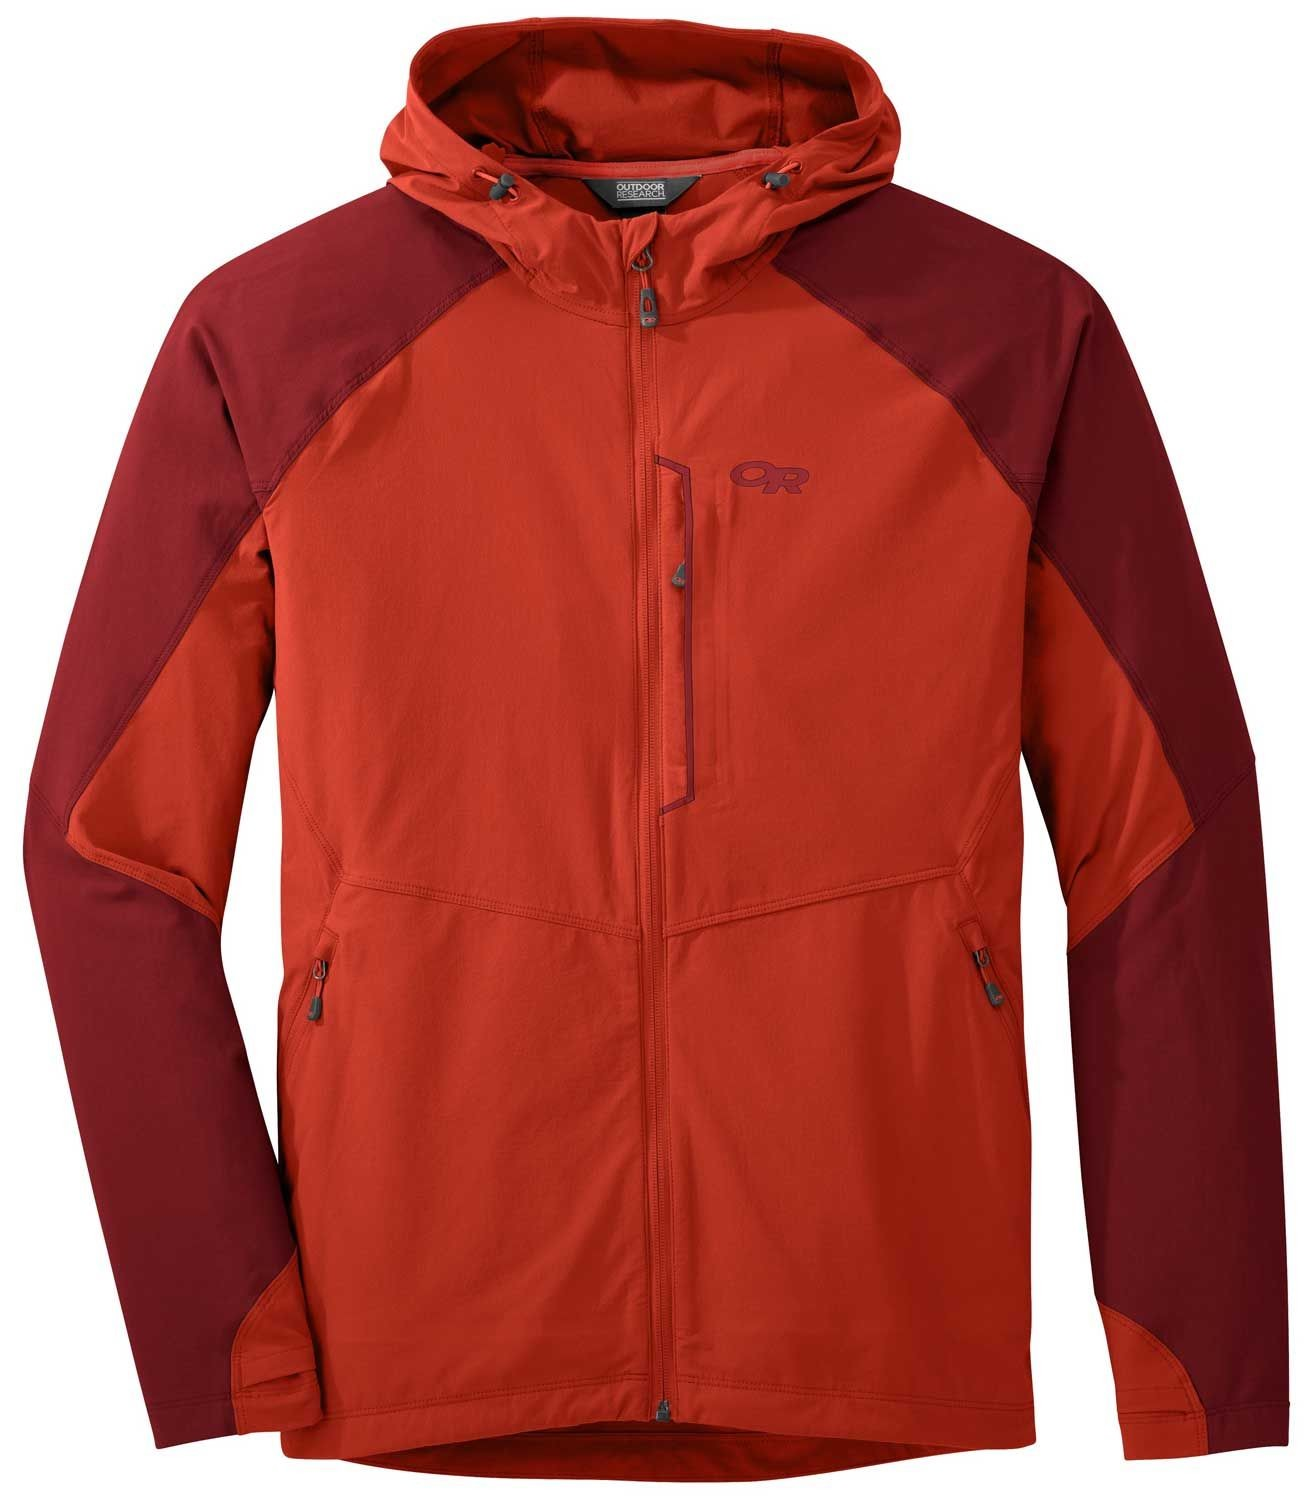 Outdoor Research Ferrosi Jacket, softshell 3 estaciones perfecto para escalada, montaña, trekking